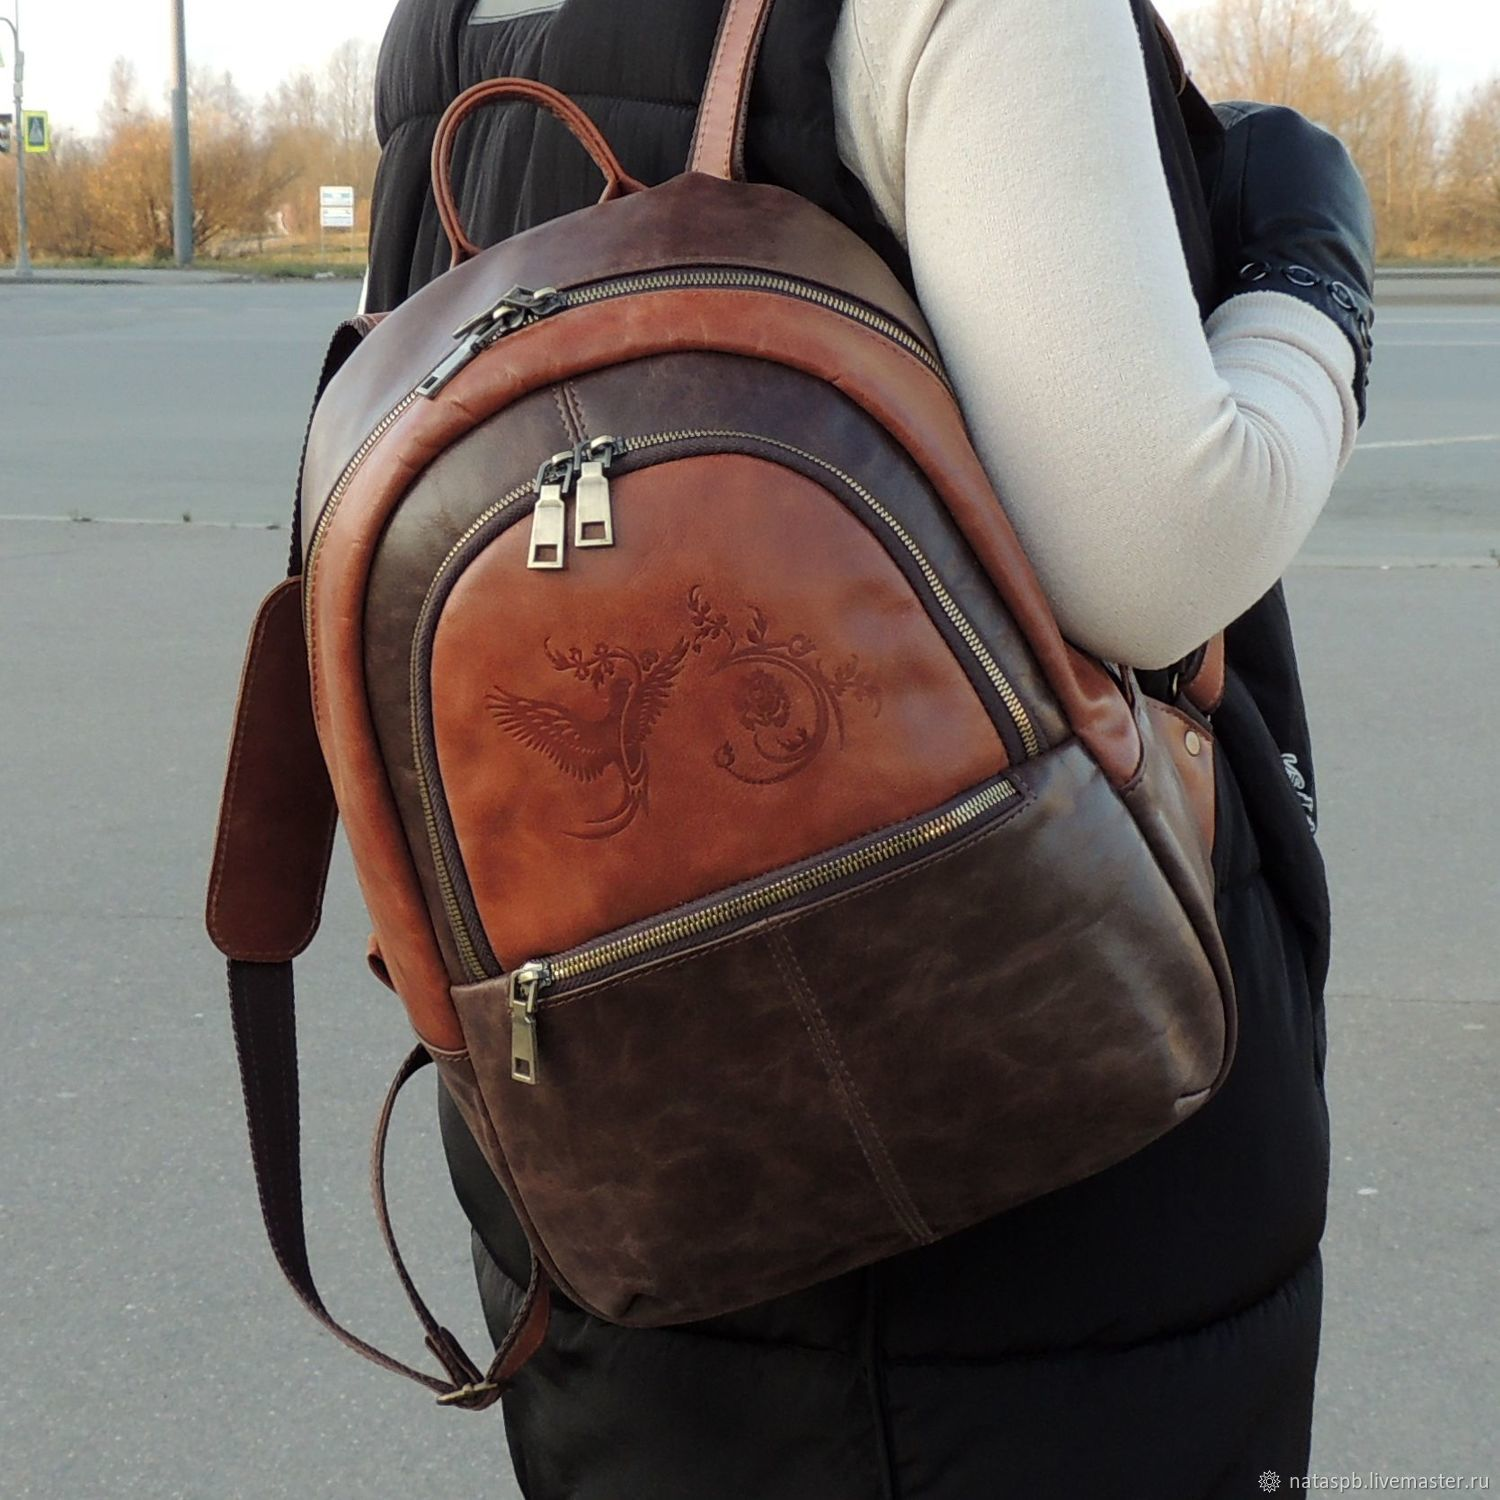 Backpack leather female brown Leona Mod R43-602-1, Backpacks, St. Petersburg,  Фото №1